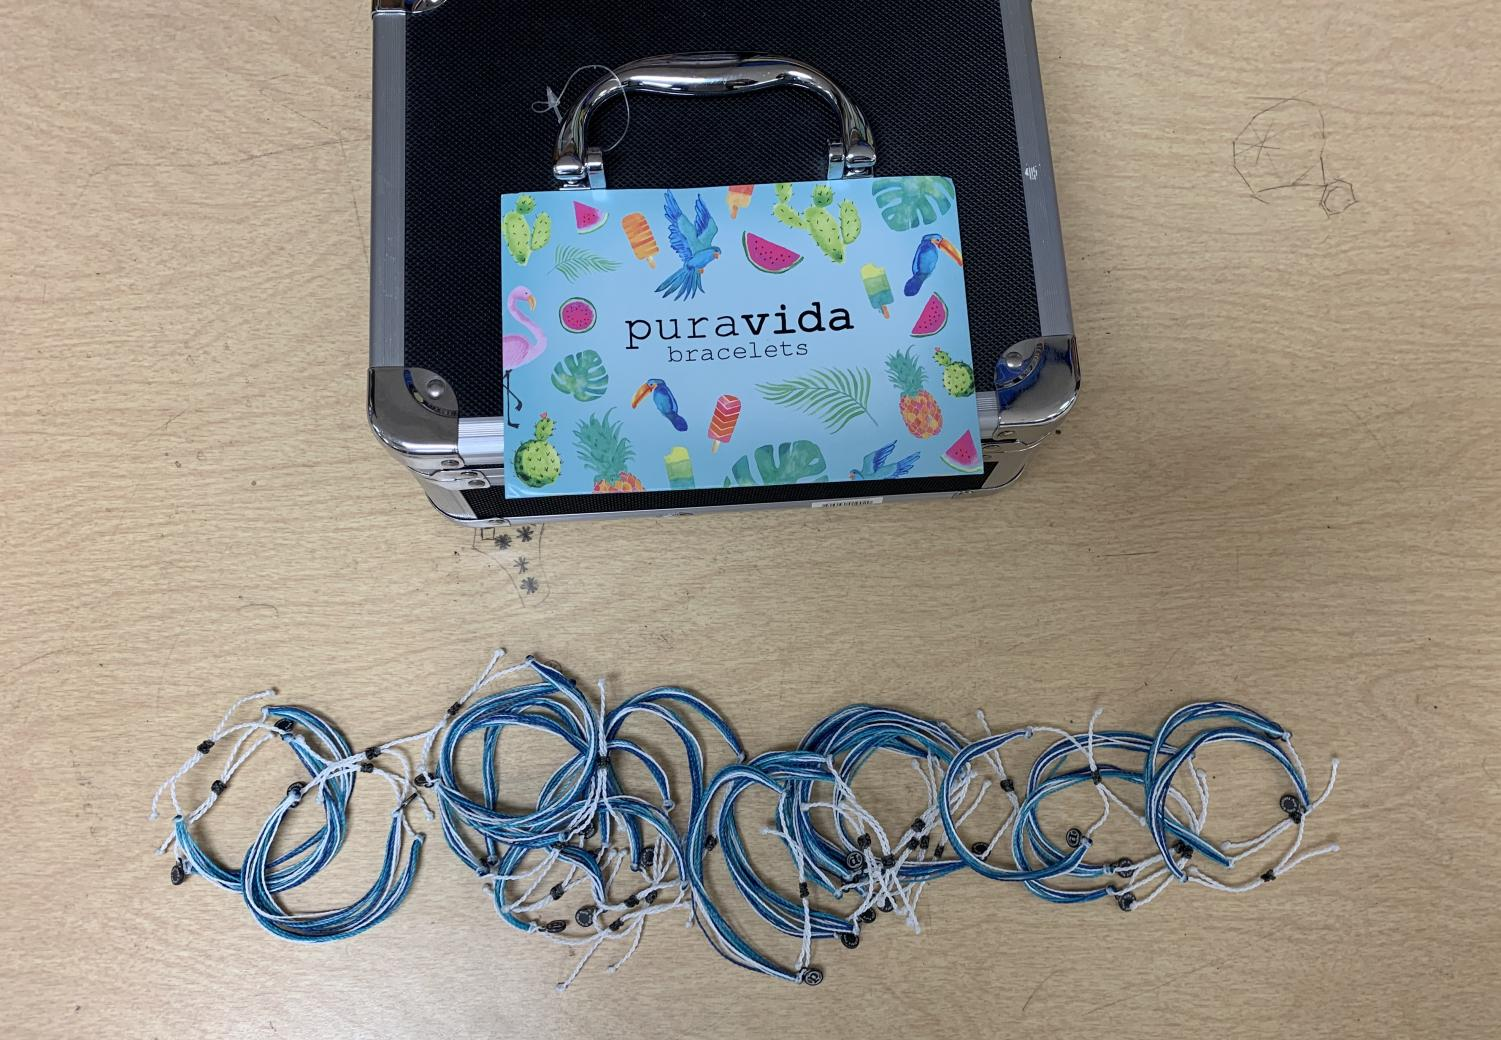 KVDT is selling blue and white Pura Vida bracelets on Dec. 19 and 20 to raise money for the various items that the team needs throughout the season.